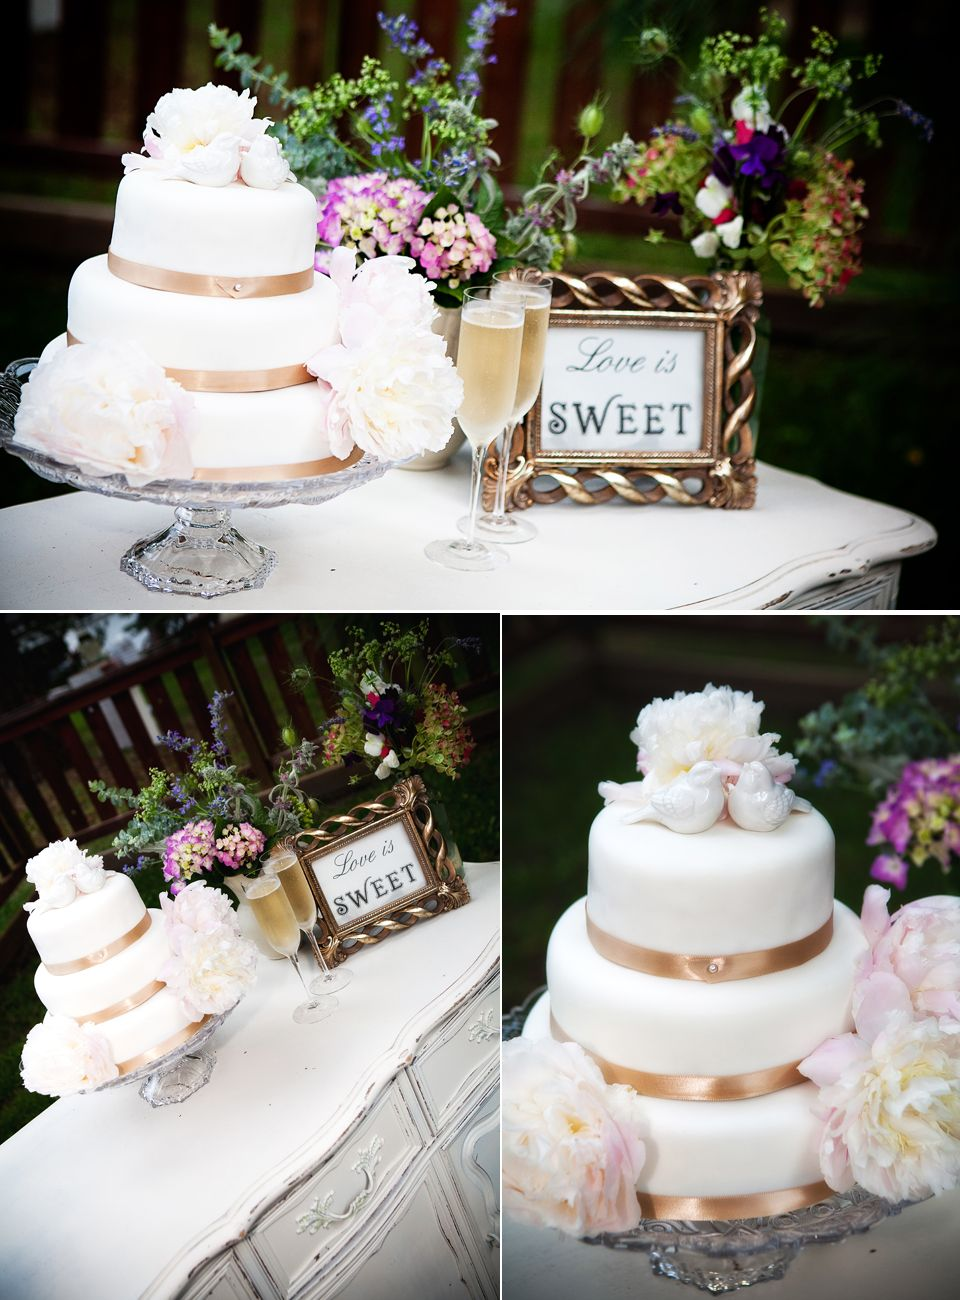 Wedding cake table decoration ideas  Cable Table Decorations  Wedding Ideas  Wedding Cake  Wedding